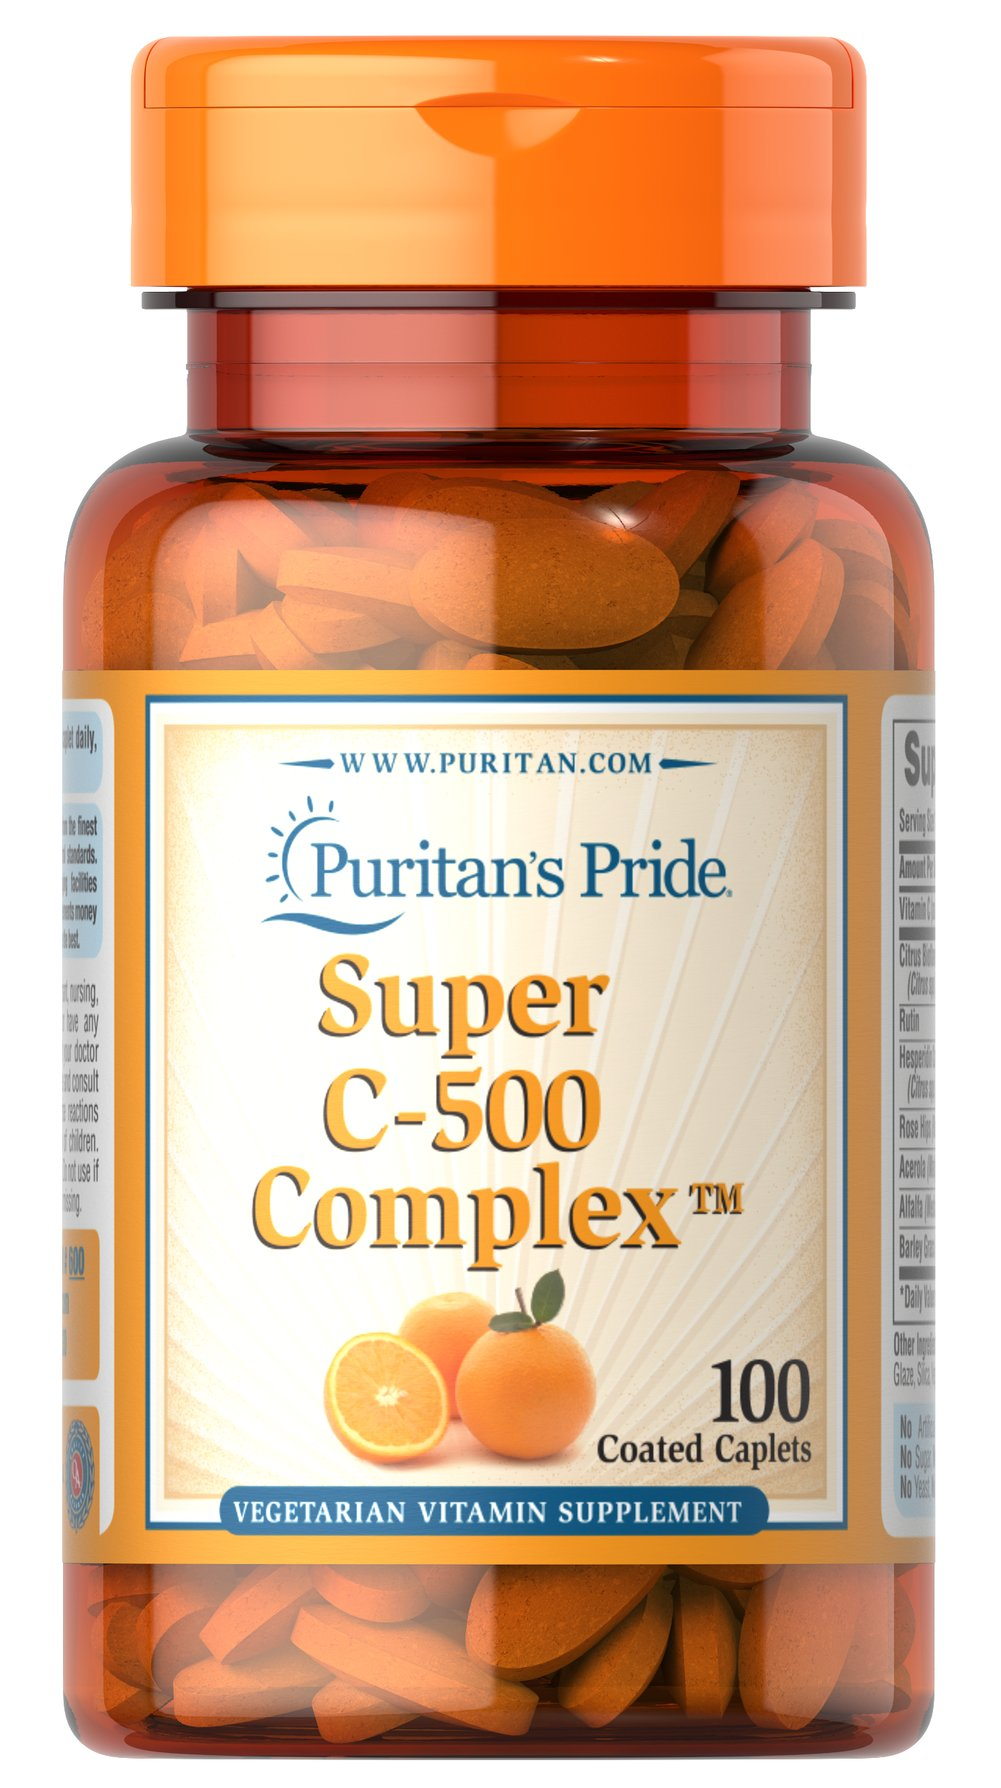 Vitamin C-500 Complex <p>Vitamin C  is essential to many functions in the body and is one of the leading vitamins for immune support.** Our C-complex includes potent Vitamin C as Ascorbic Acid. We also include Citrus Bioflavonoids, Rose Hips, Rutin, and Acerola.**</p><p>Offers superior antioxidant support.**</p><p>Supports healthy immune function and promotes well-being.**</p> 100 Tablets 500 mg $10.99